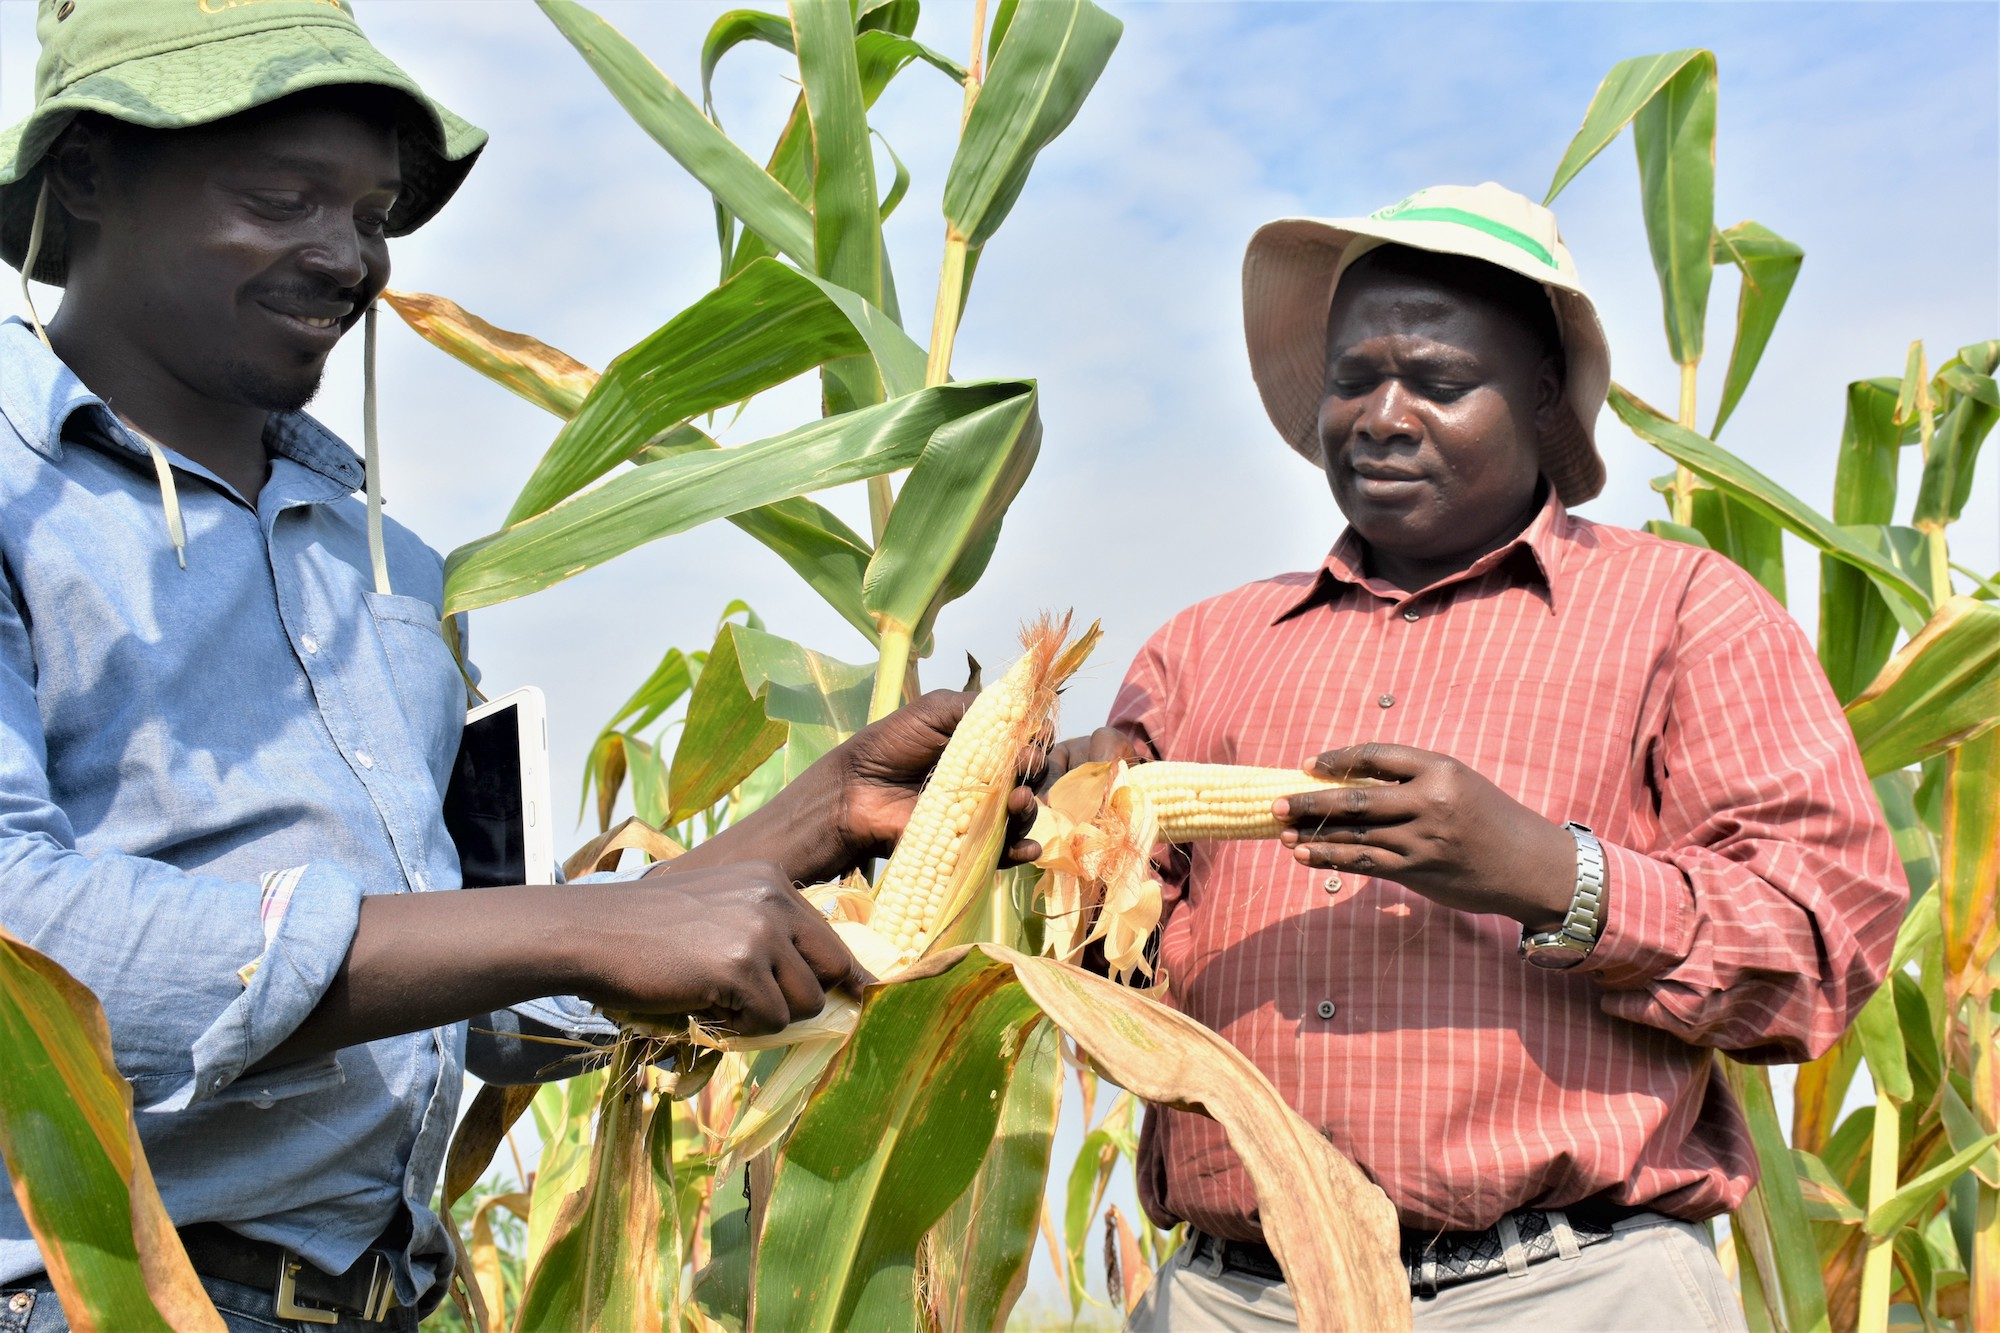 Godfrey Asea (right), director of the National Crops Resources Research Institute (NaCRRI), and Uganda's National Agricultural Research Organization (NARO) maize breeder, Daniel Bomet, visit an improved maize plot at NARO's Kigumba Station, in central Uganda. (Photo: Joshua Masinde/CIMMYT)